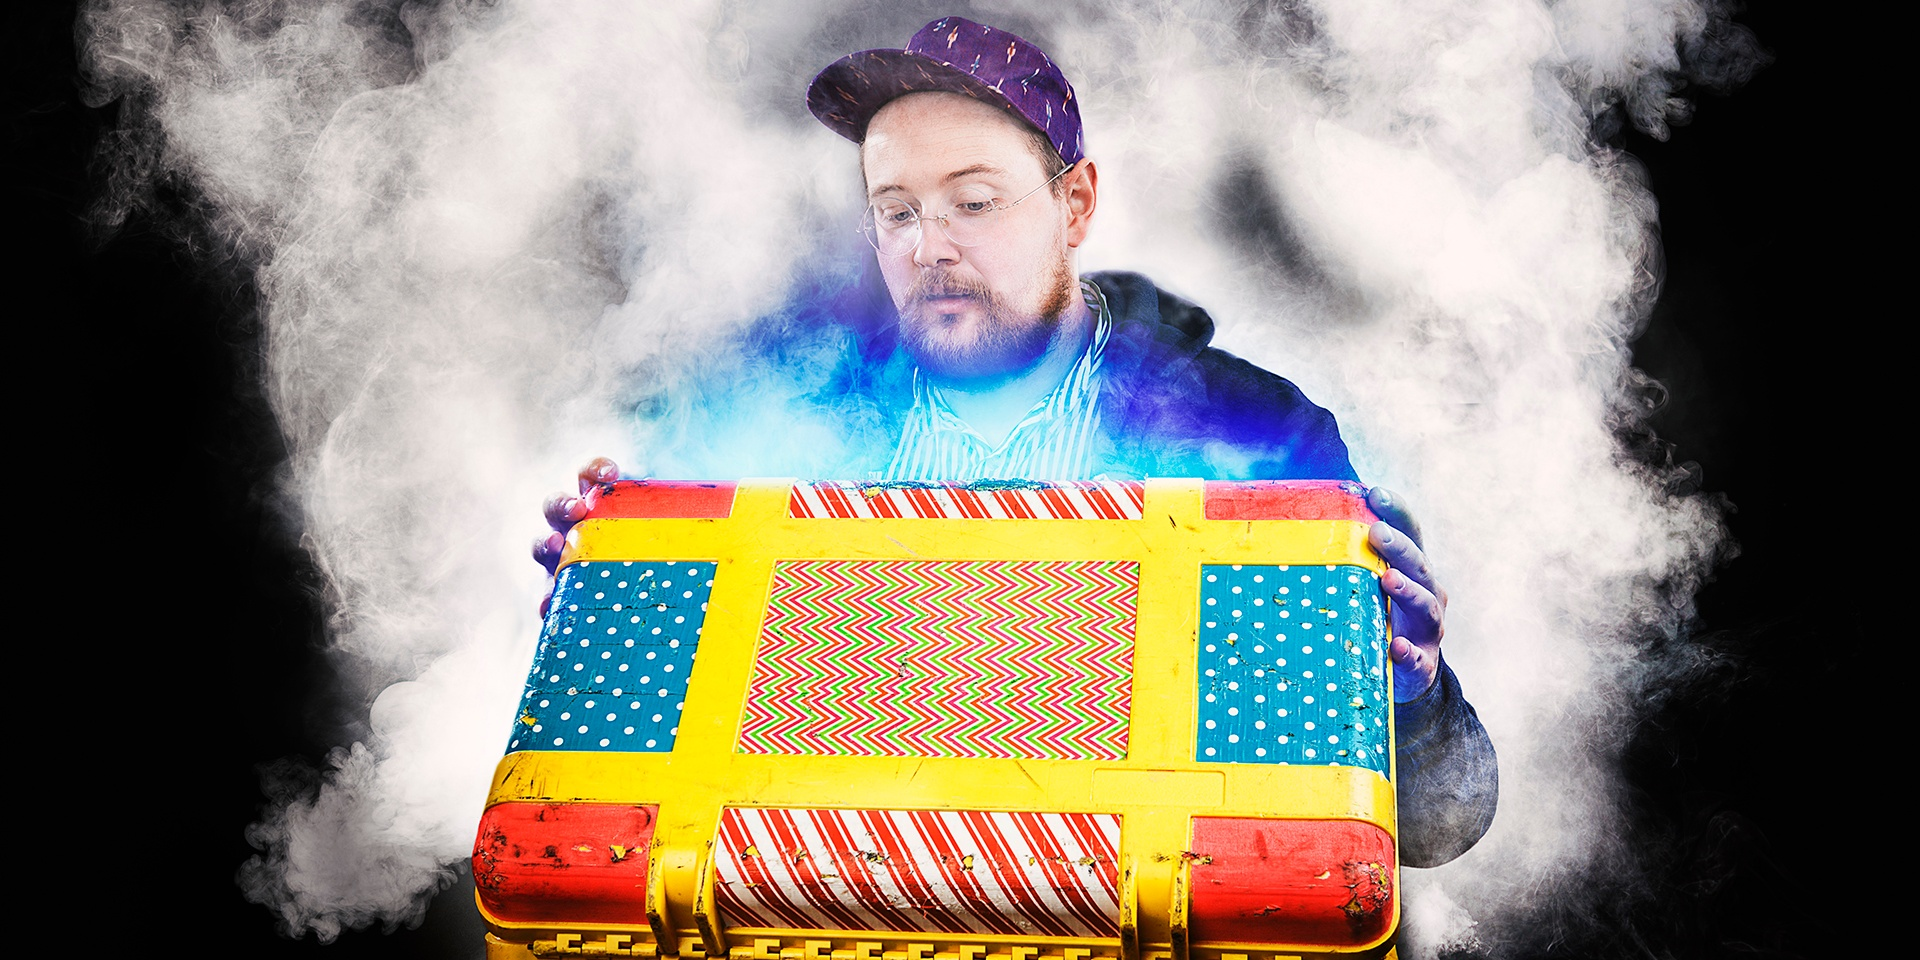 Electronic maestro Dan Deacon is coming to Singapore